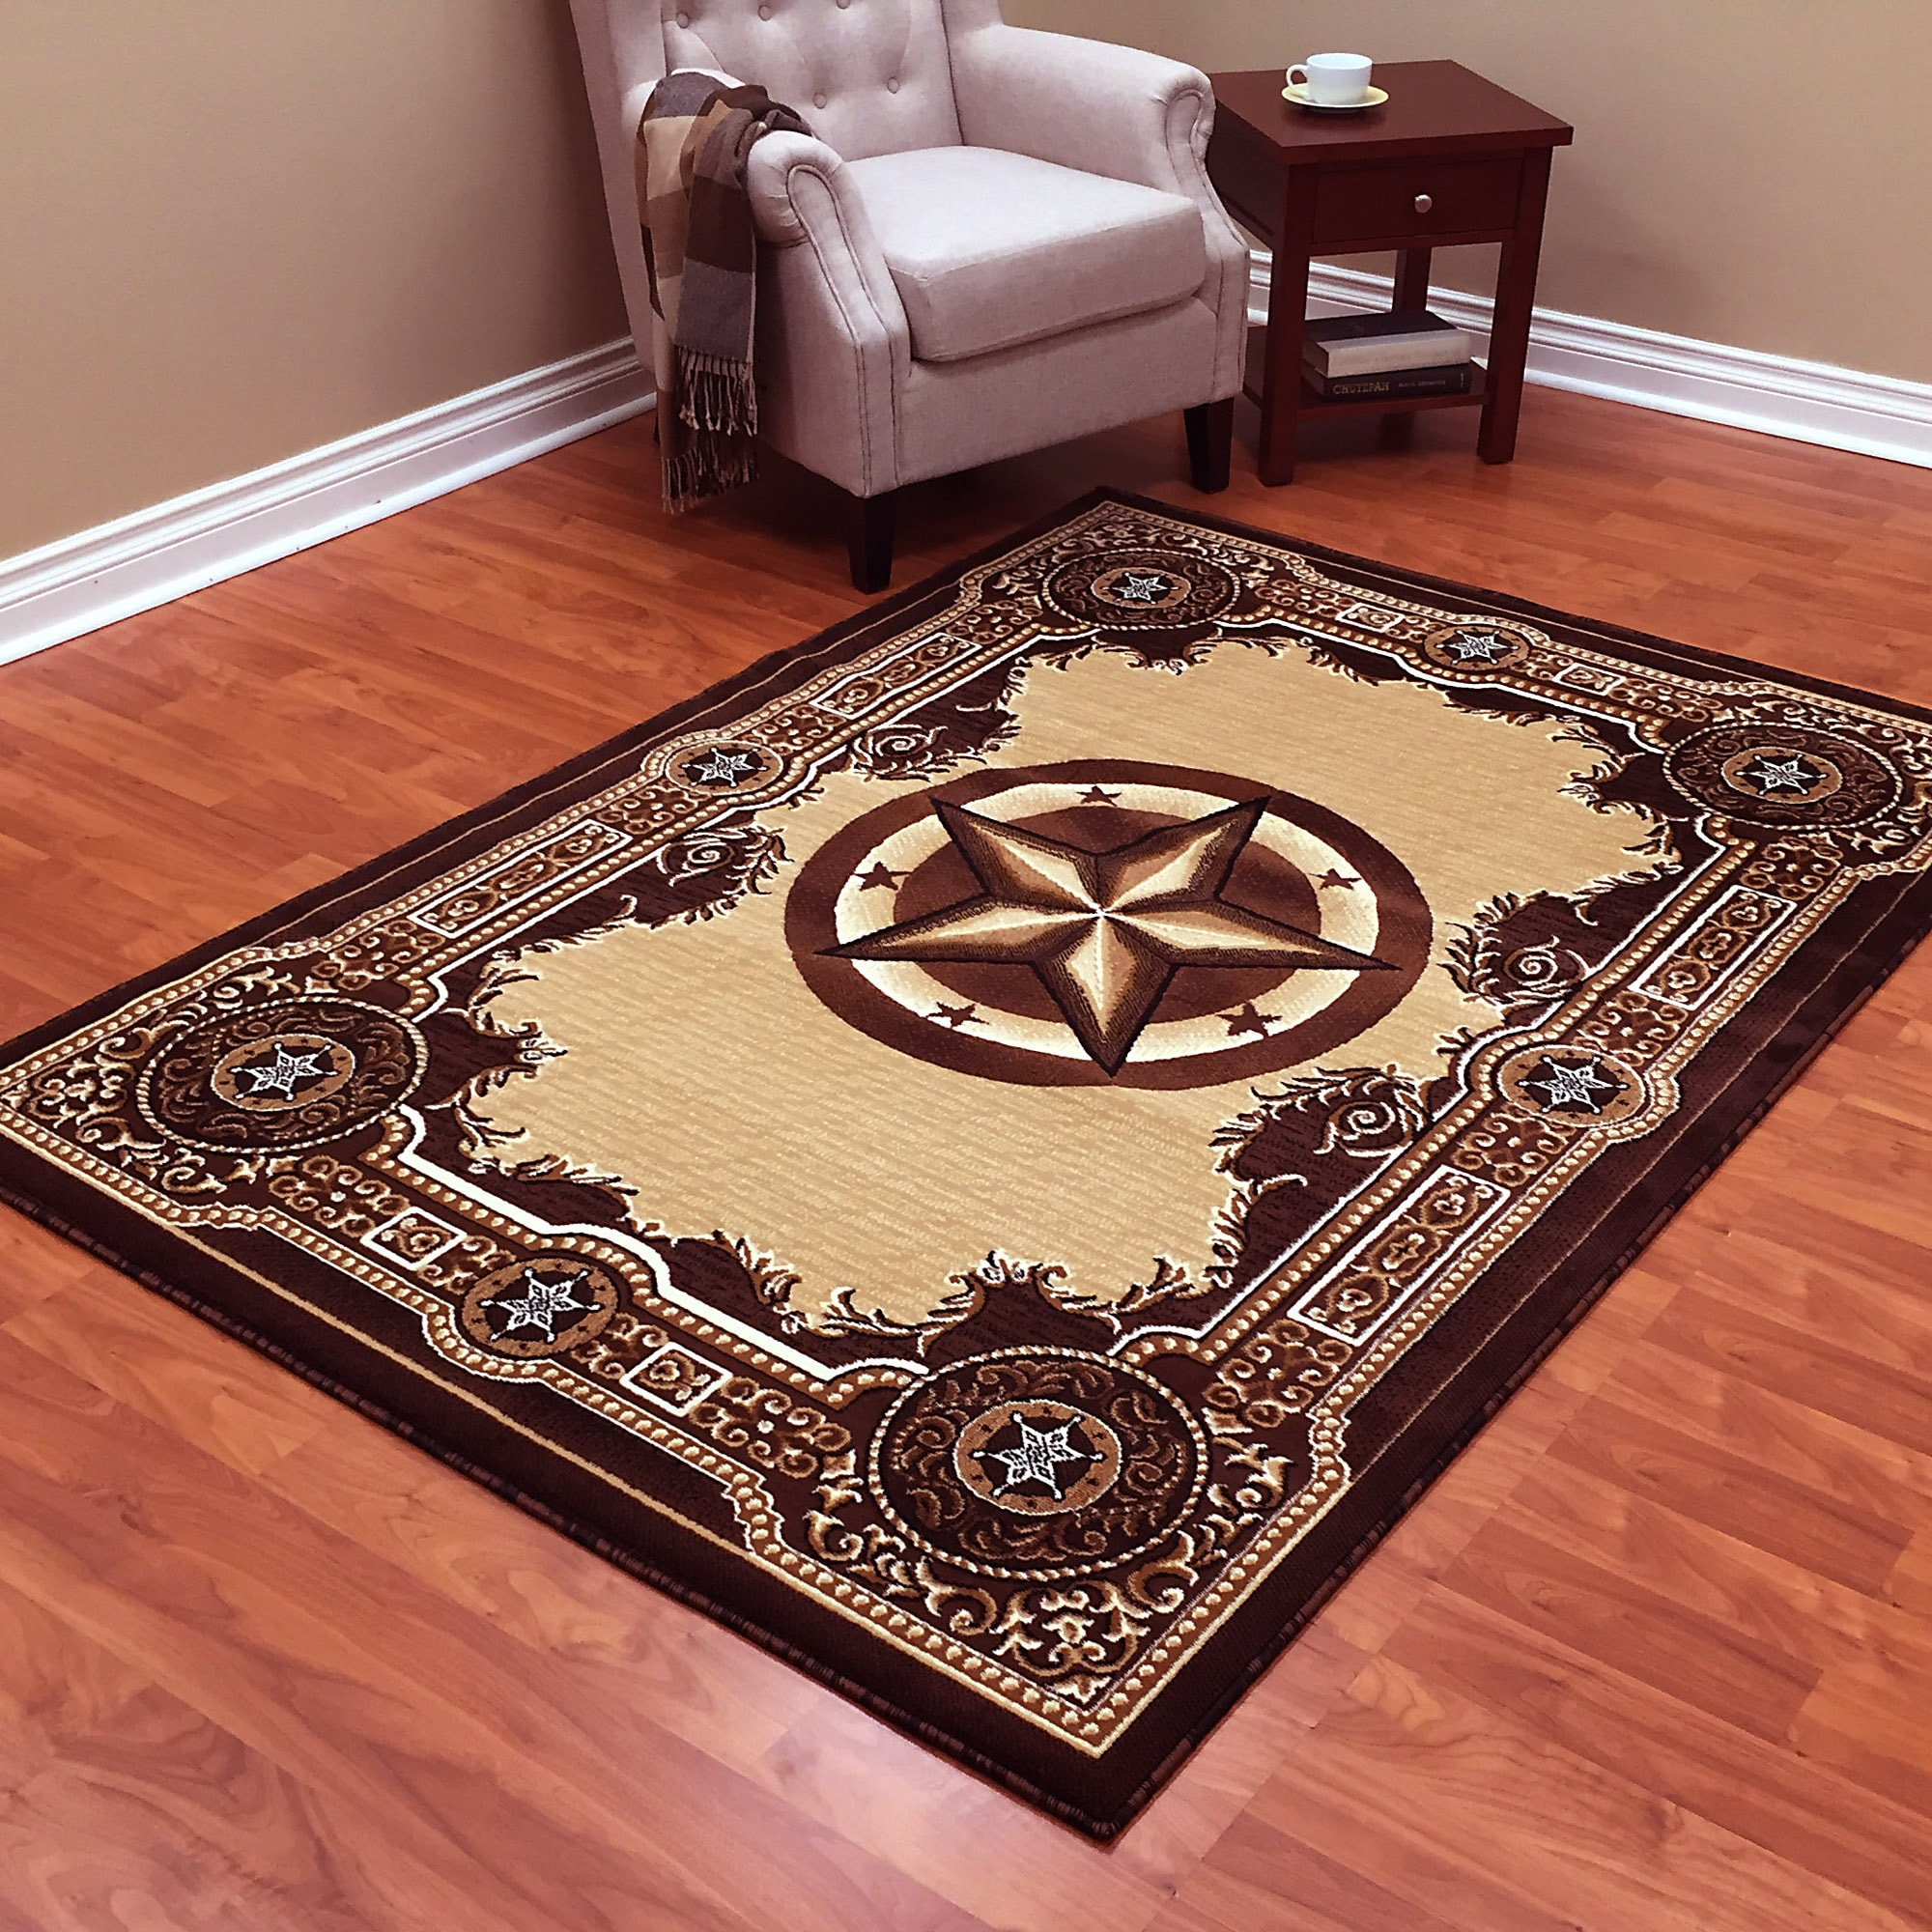 en rug designer i tai western rugs hemisphere product from b architonic ping by